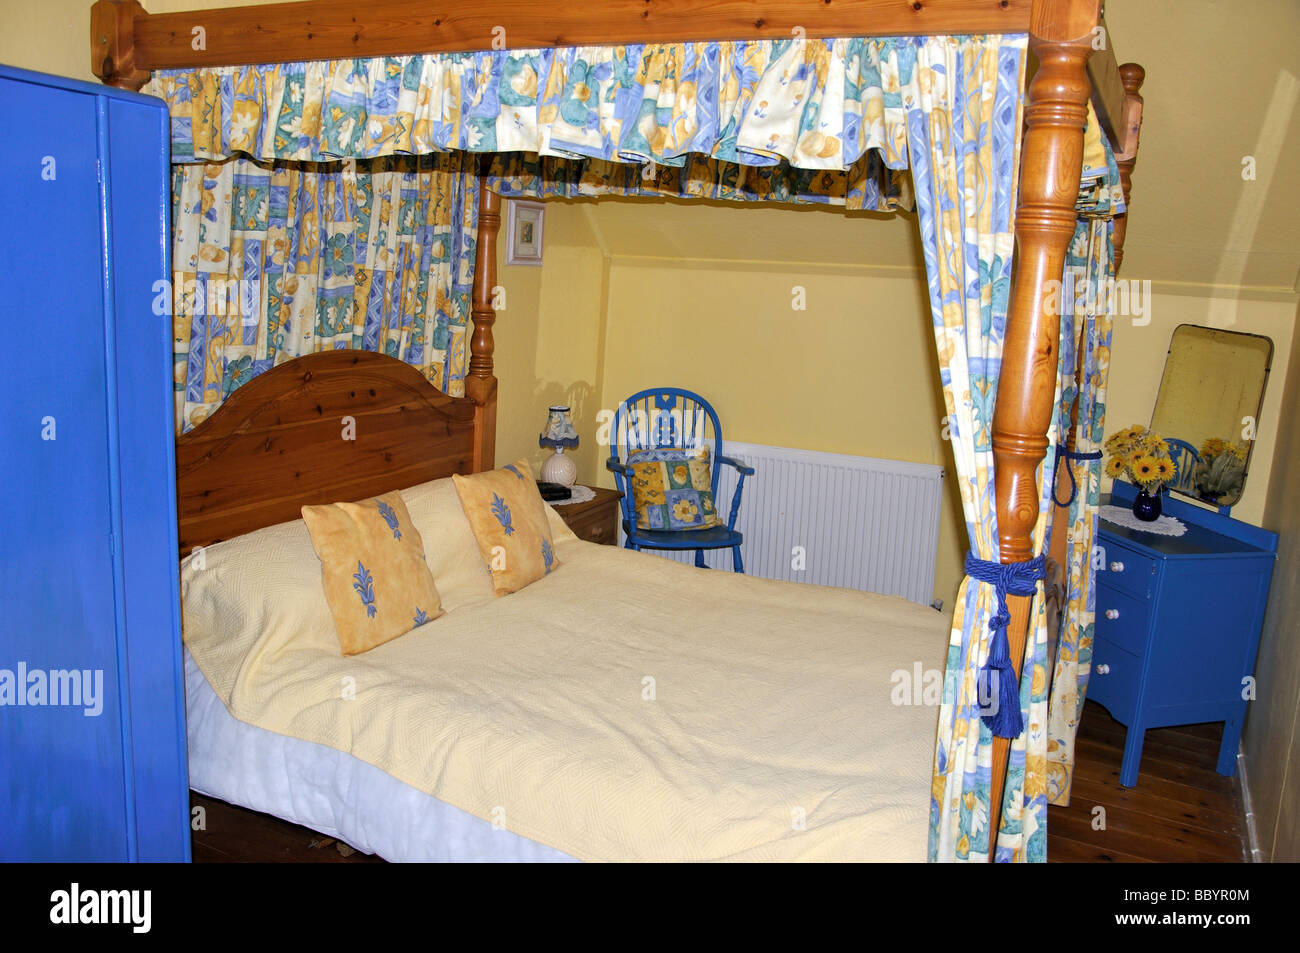 Four-poster bed in cottage, Looe, Cornwall, England, United Kingdom - Stock Image